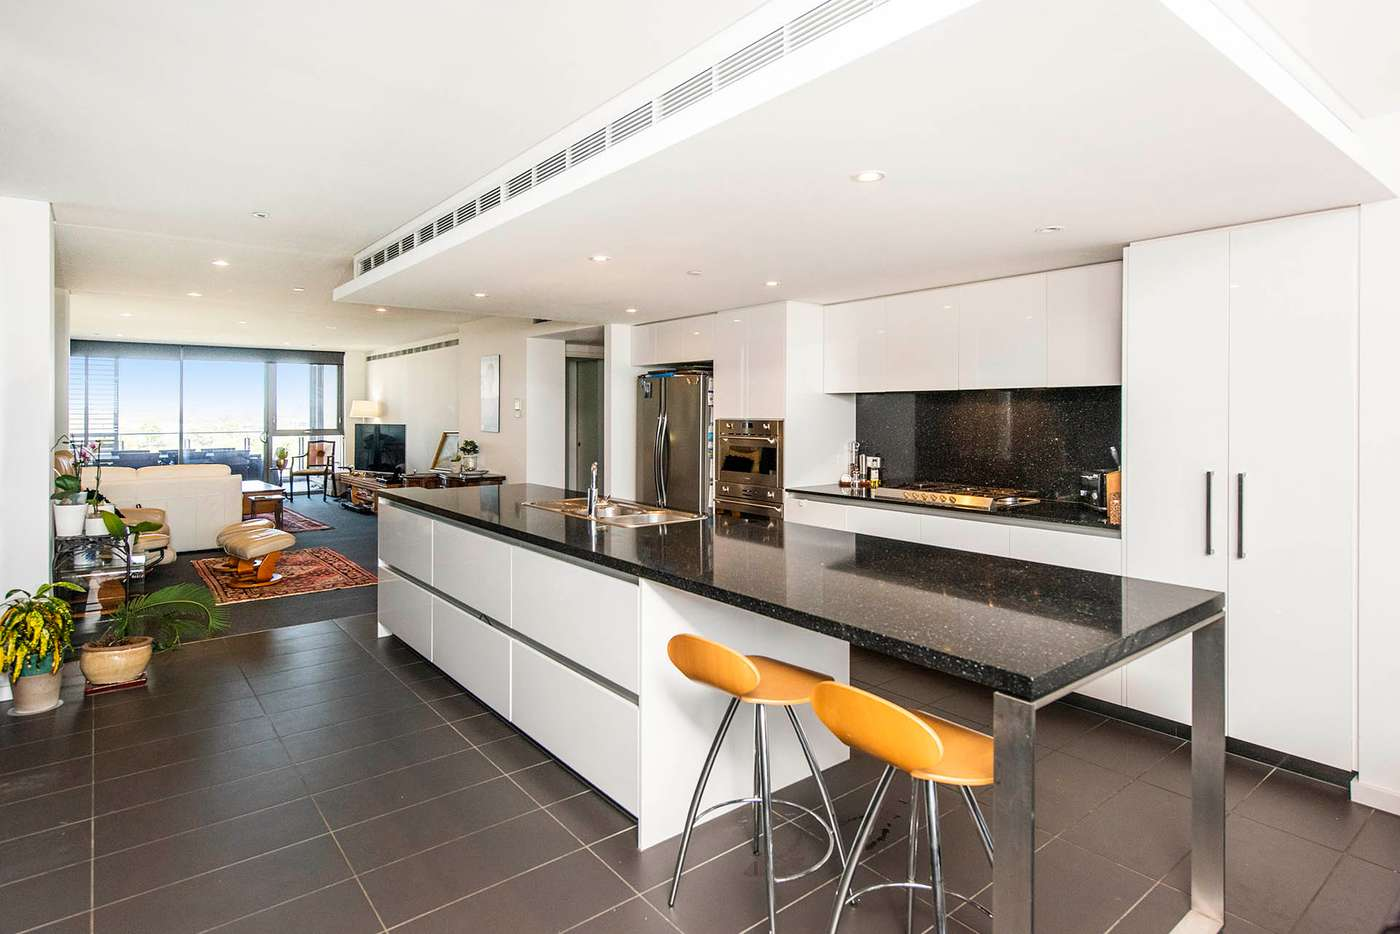 Main view of Homely apartment listing, 608/96 Bow River, Burswood WA 6100